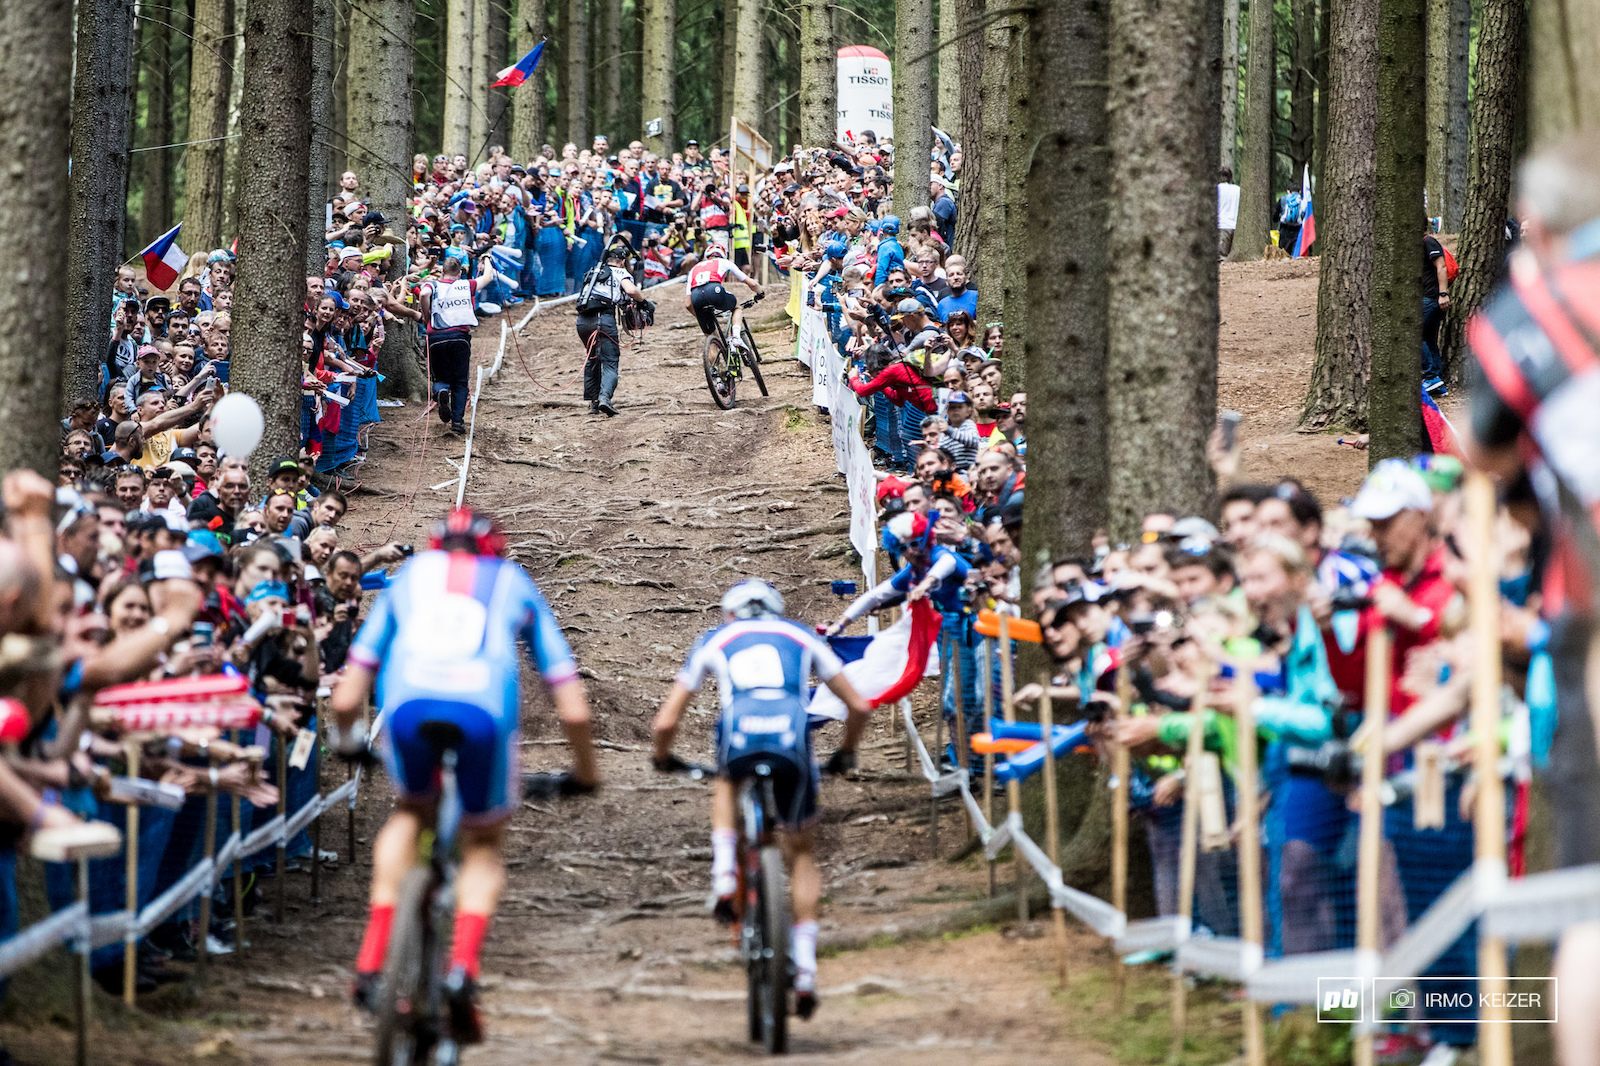 This race proved tough to call. At first Kulhavy seemed to be on fire but Cink Absalon and Schurter were quick to follow. Then finally Schurter gained the upper hand. Absalon and Kulhavy trying to close the gap.